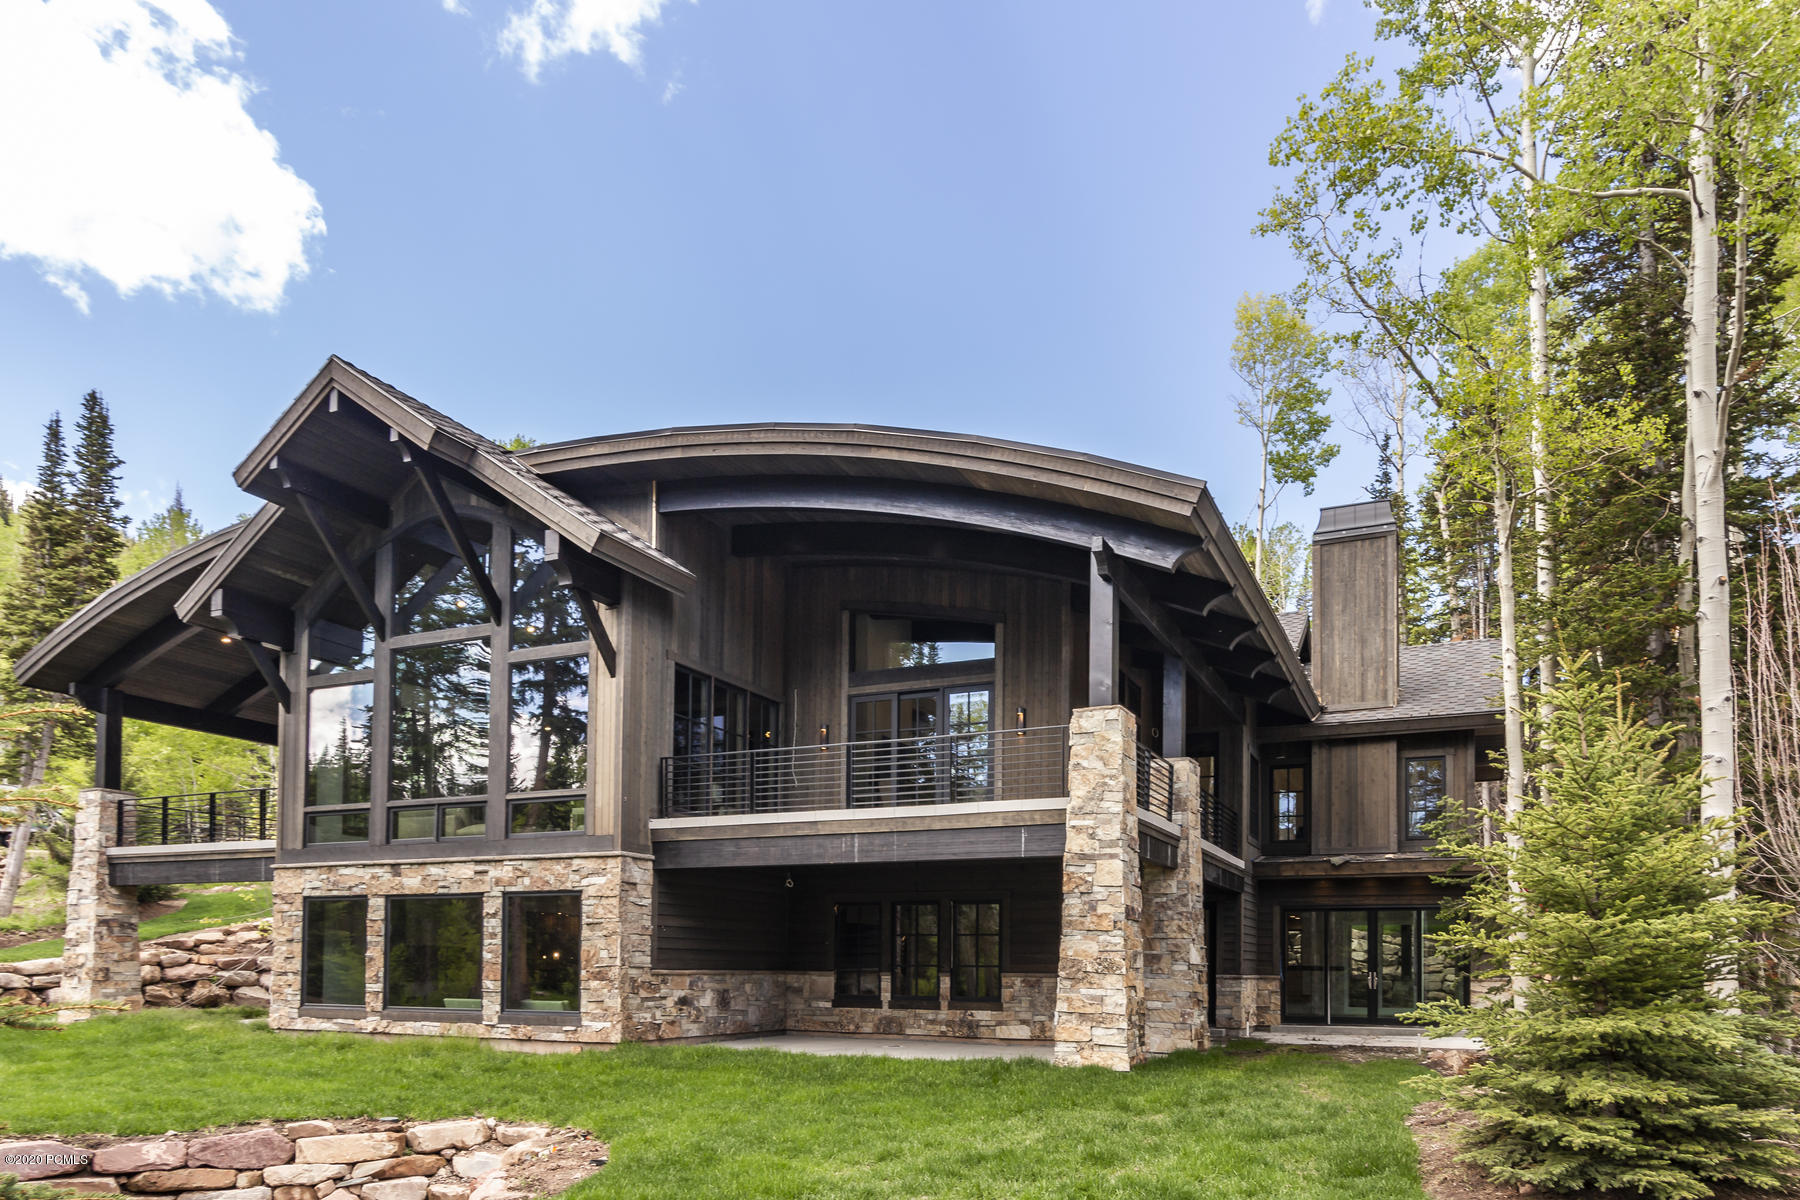 188 White Pine Canyon Road, Park City, Utah 84060, 7 Bedrooms Bedrooms, ,10 BathroomsBathrooms,Single Family,For Sale,White Pine Canyon,20190109112430415765000000